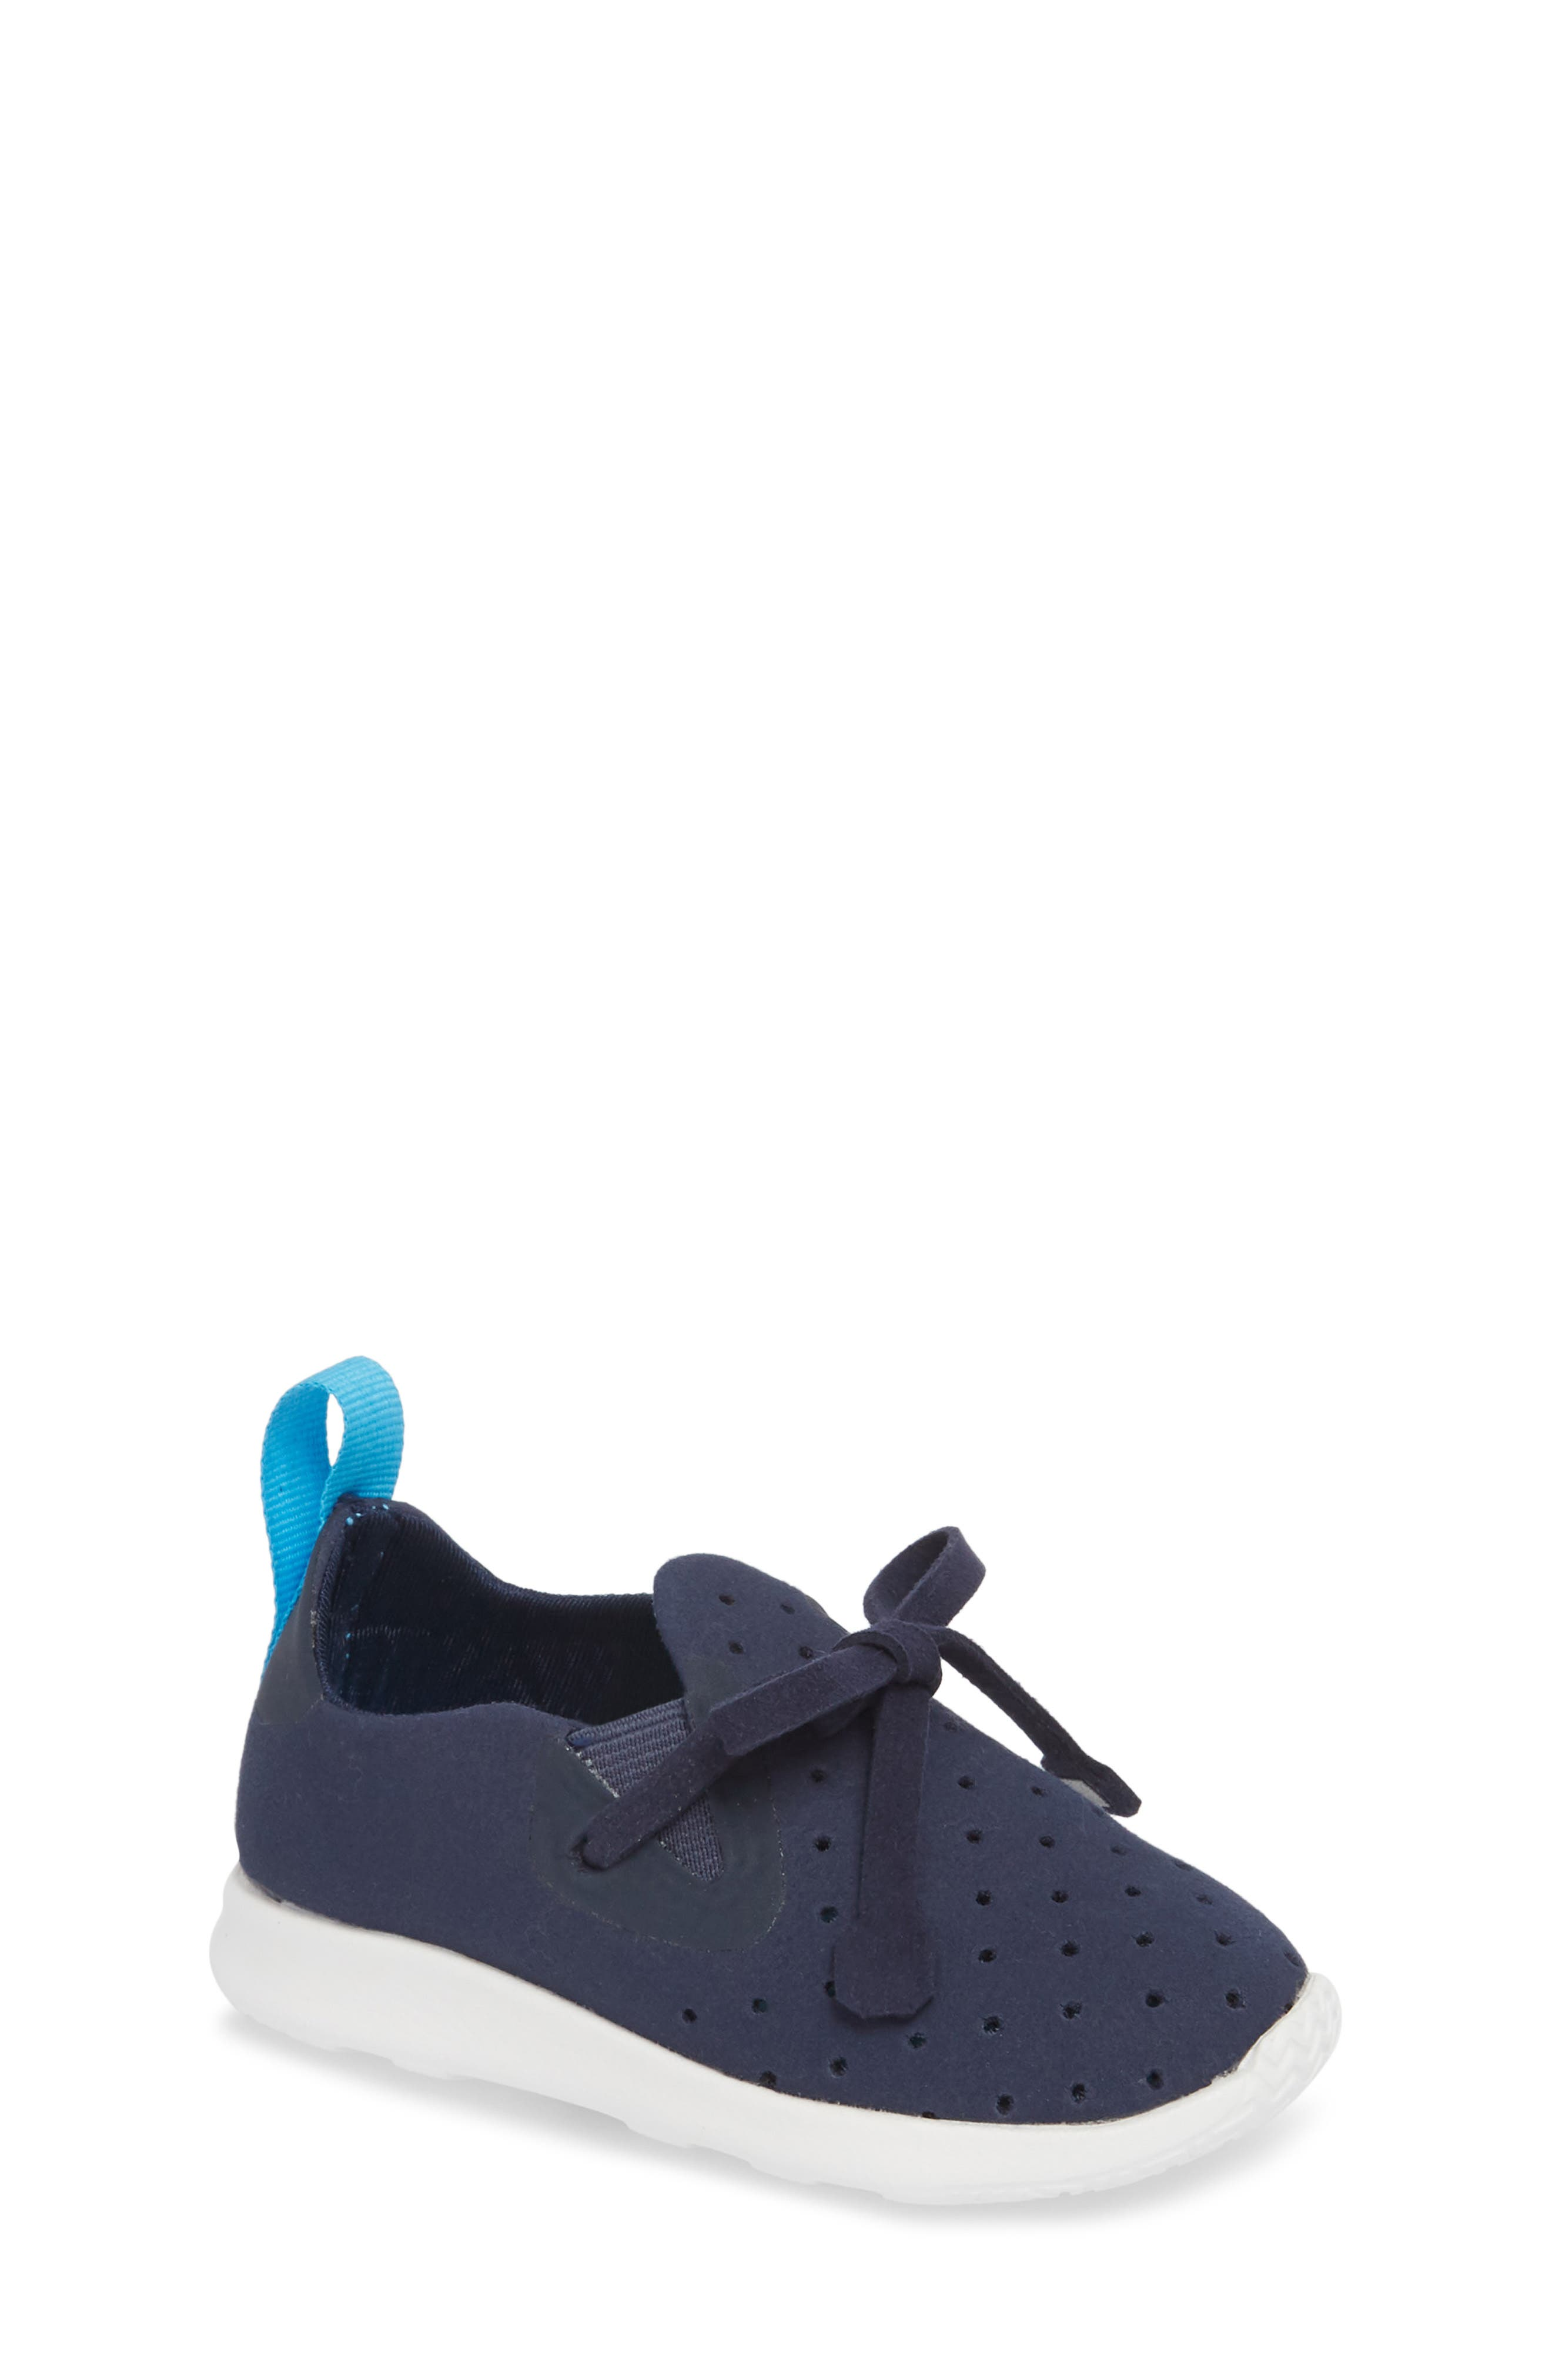 AP Moc Perforated Washable Sneaker,                             Main thumbnail 1, color,                             Regatta Blue/ Shell White